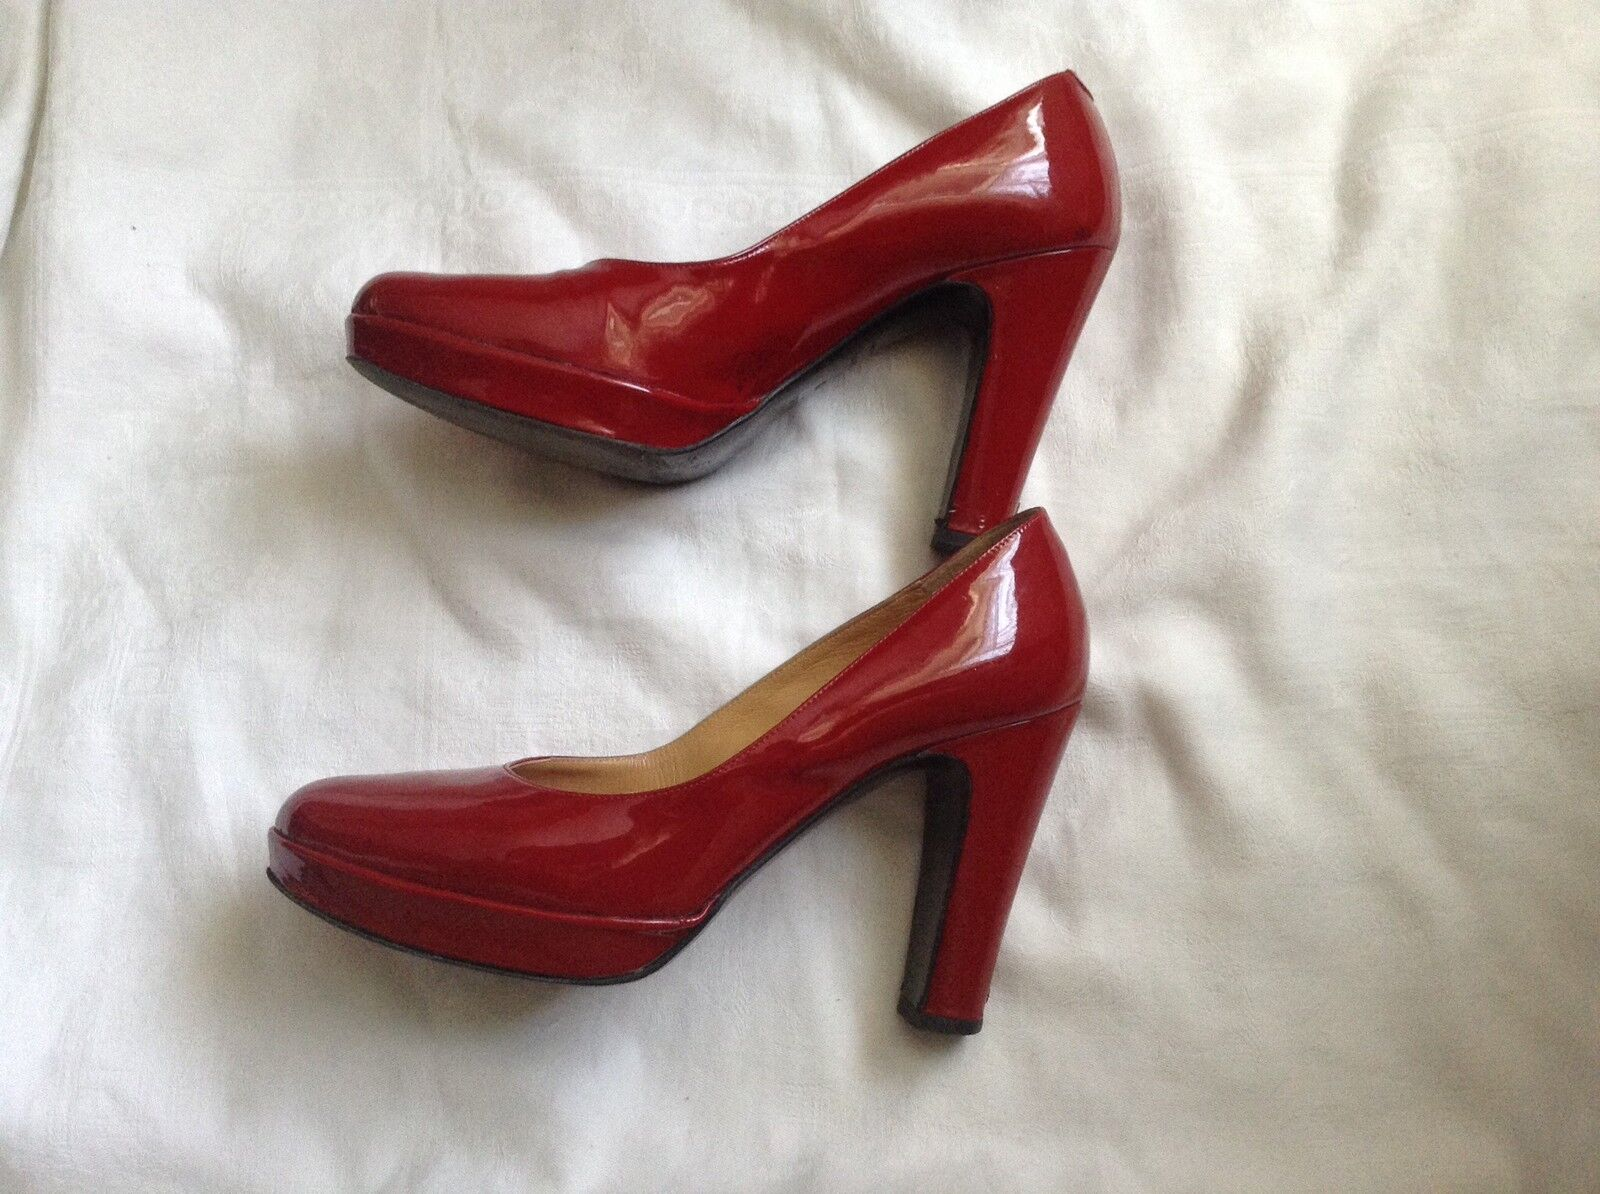 Hermes Patent Leather Größe heels,Größe 38, Größe Leather 5 UK ae9644